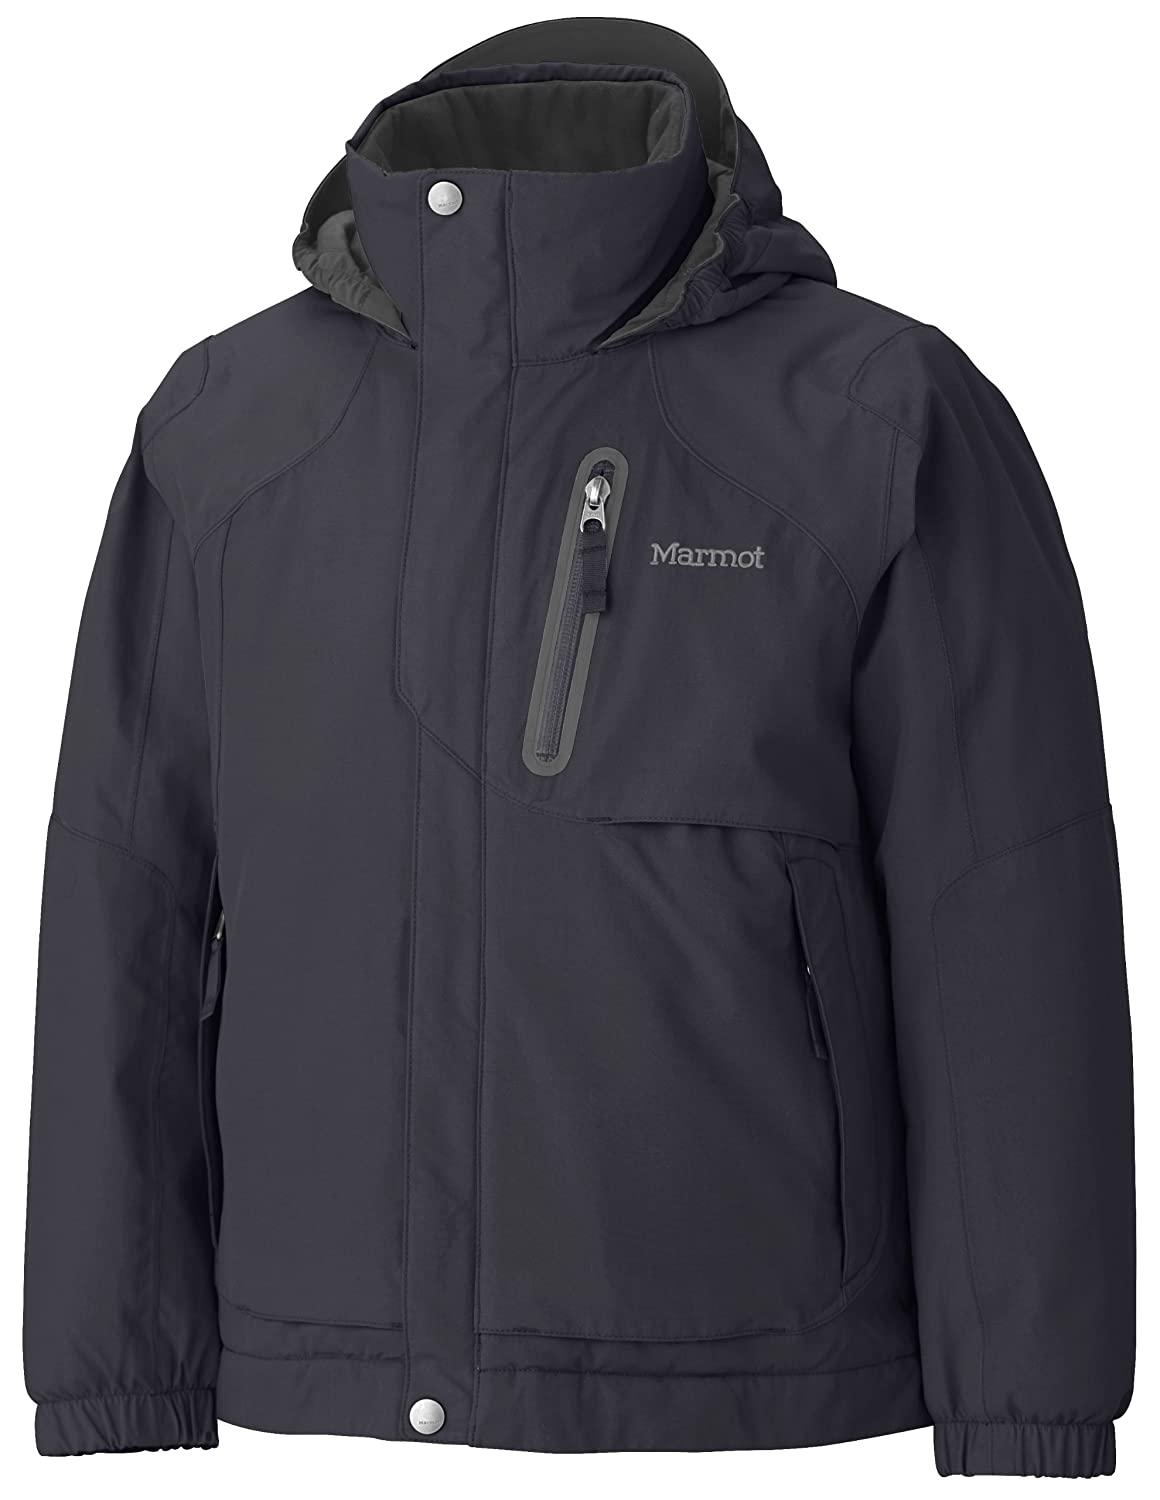 Marmot Kinder Skijacke Insulated Boy's Morzine